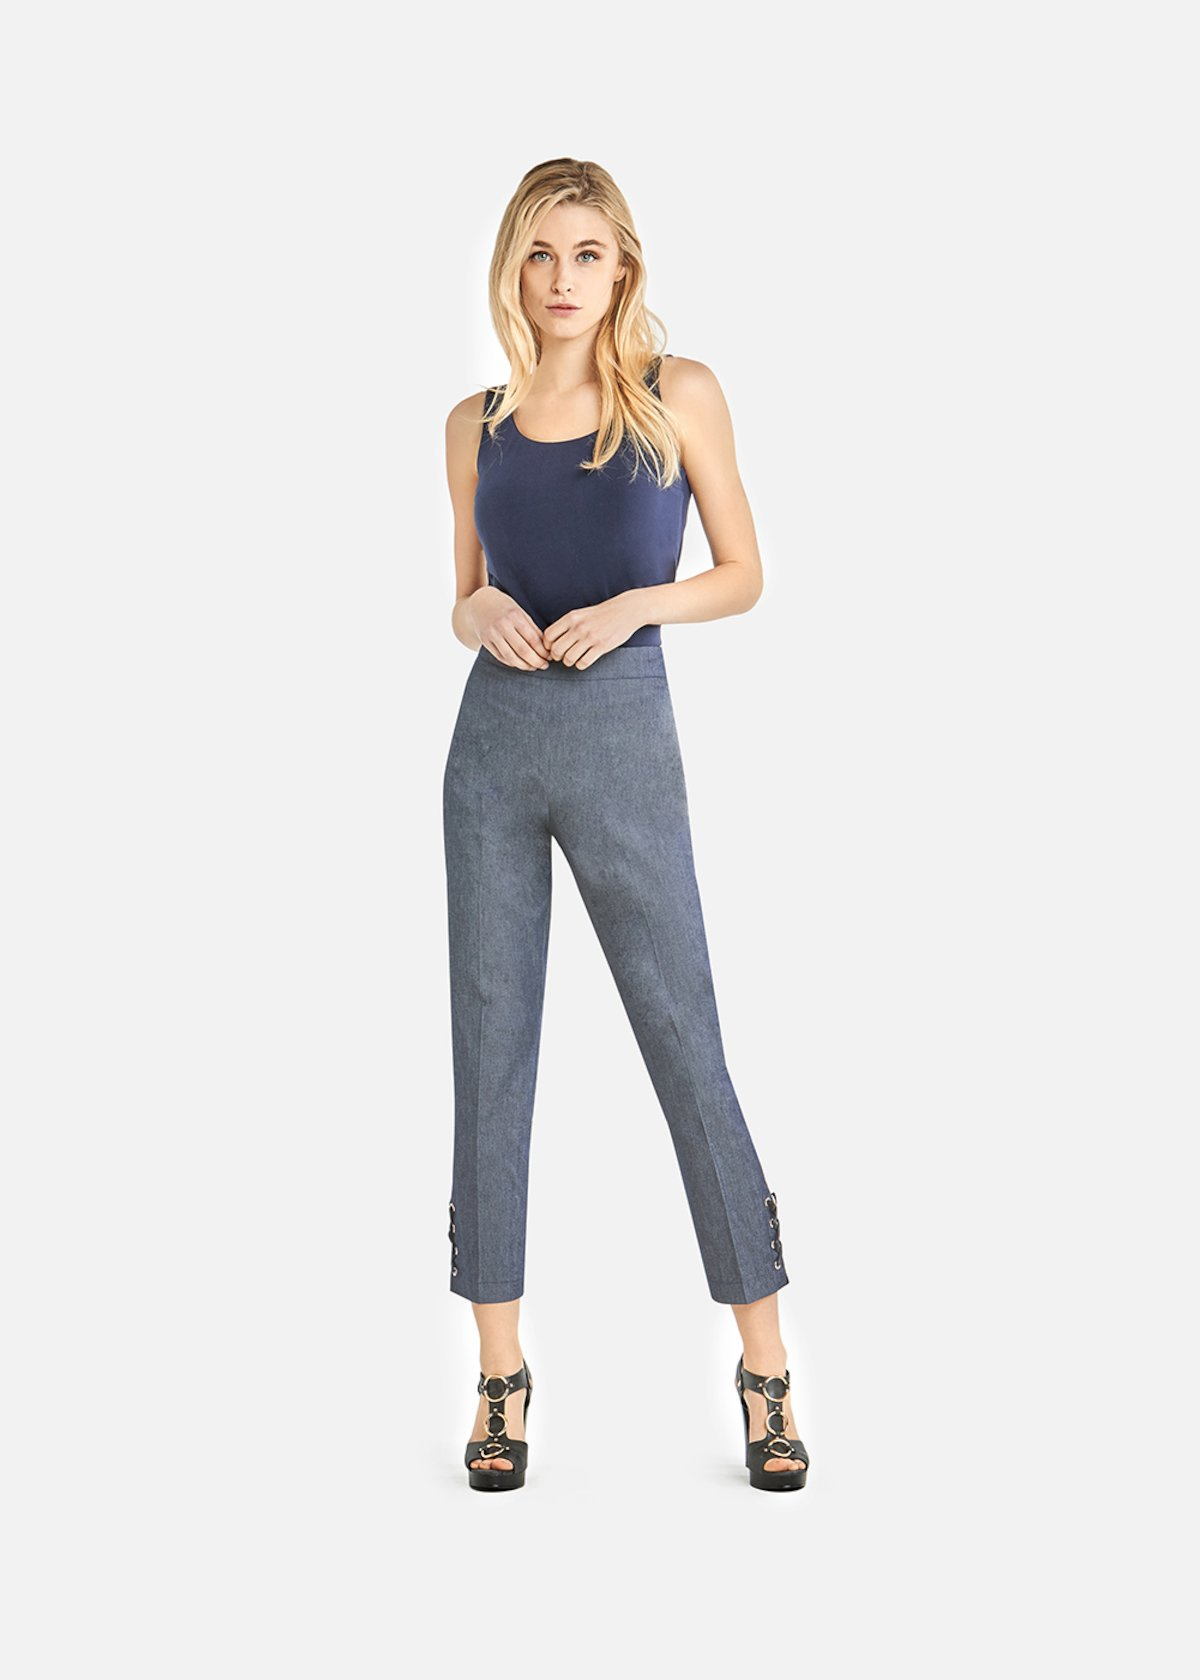 Power capri trousers with criss-cross detail on the bottom